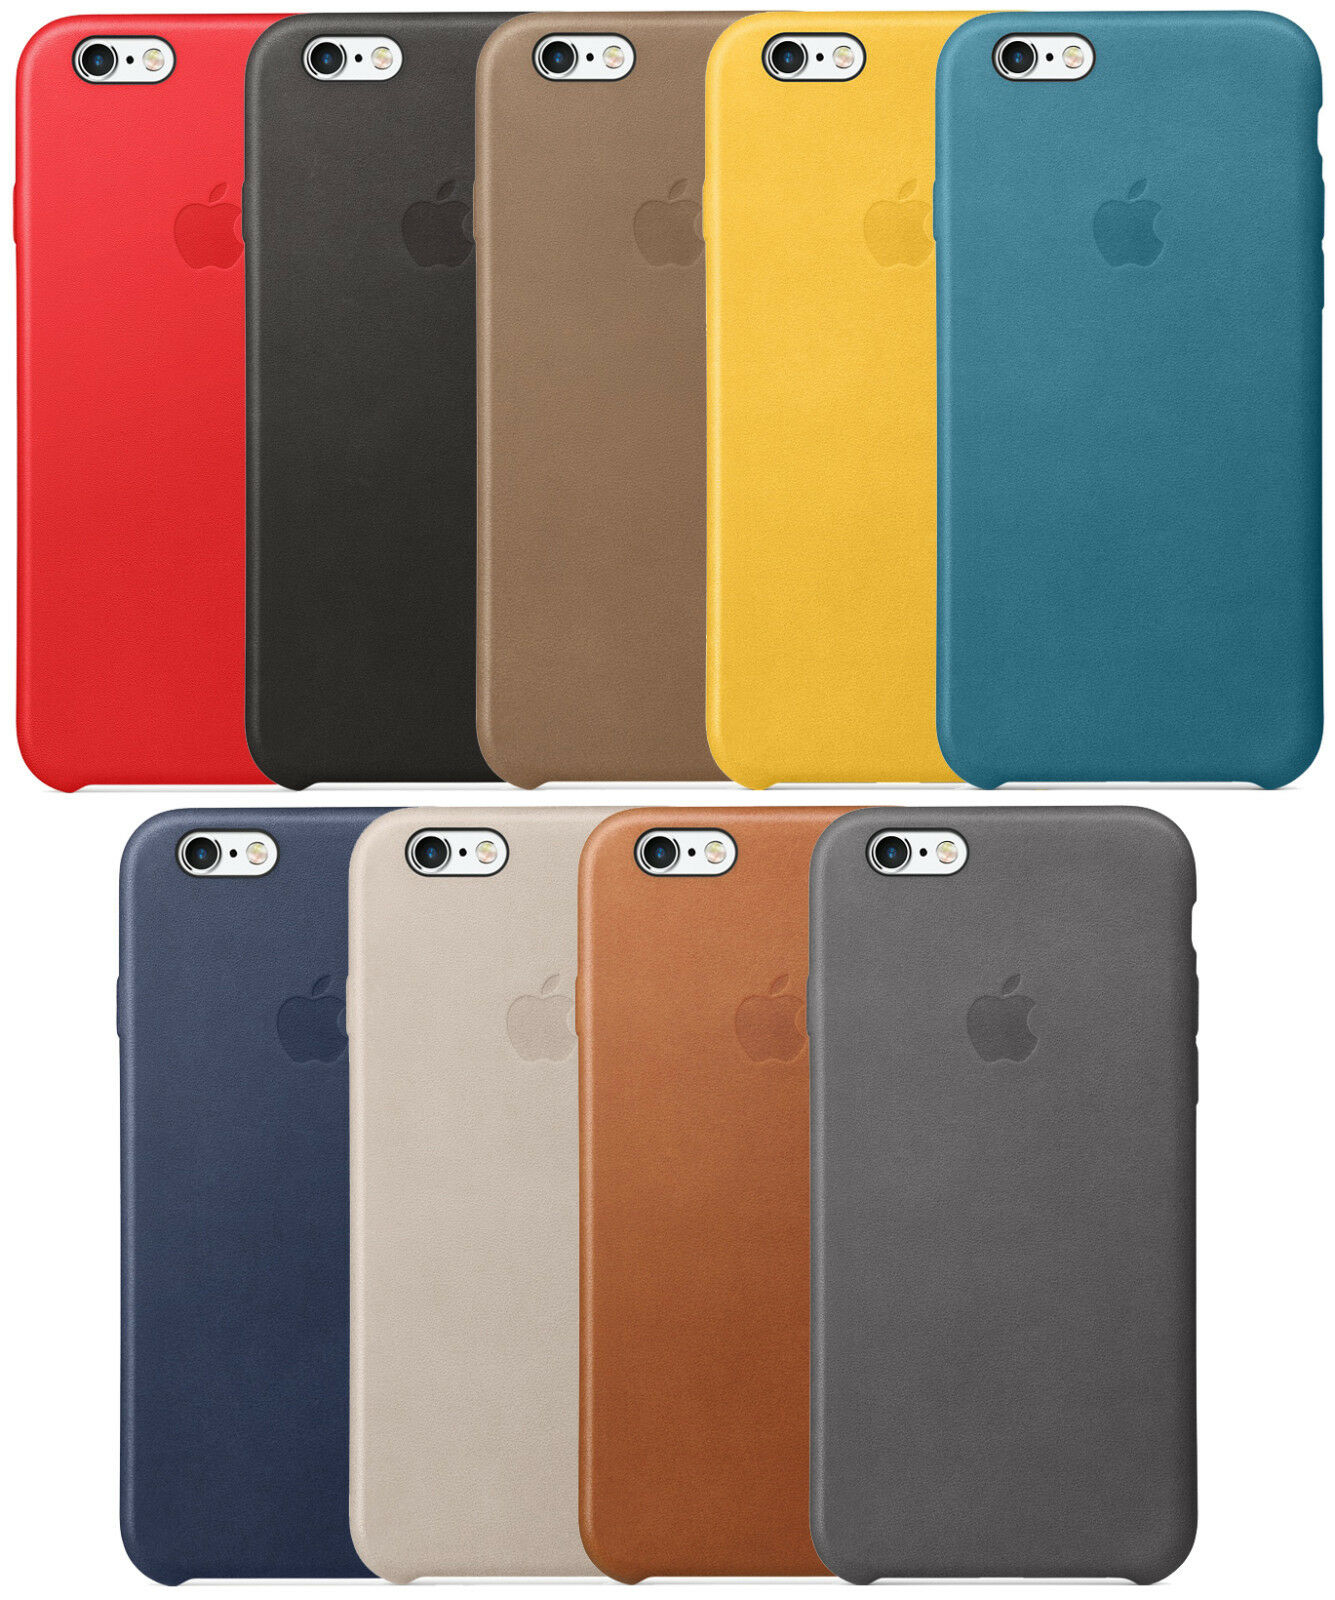 uk availability f1128 73a00 OEM Original Apple Leather Case For Apple iPhone 6 Plus and iPhone 6s Plus